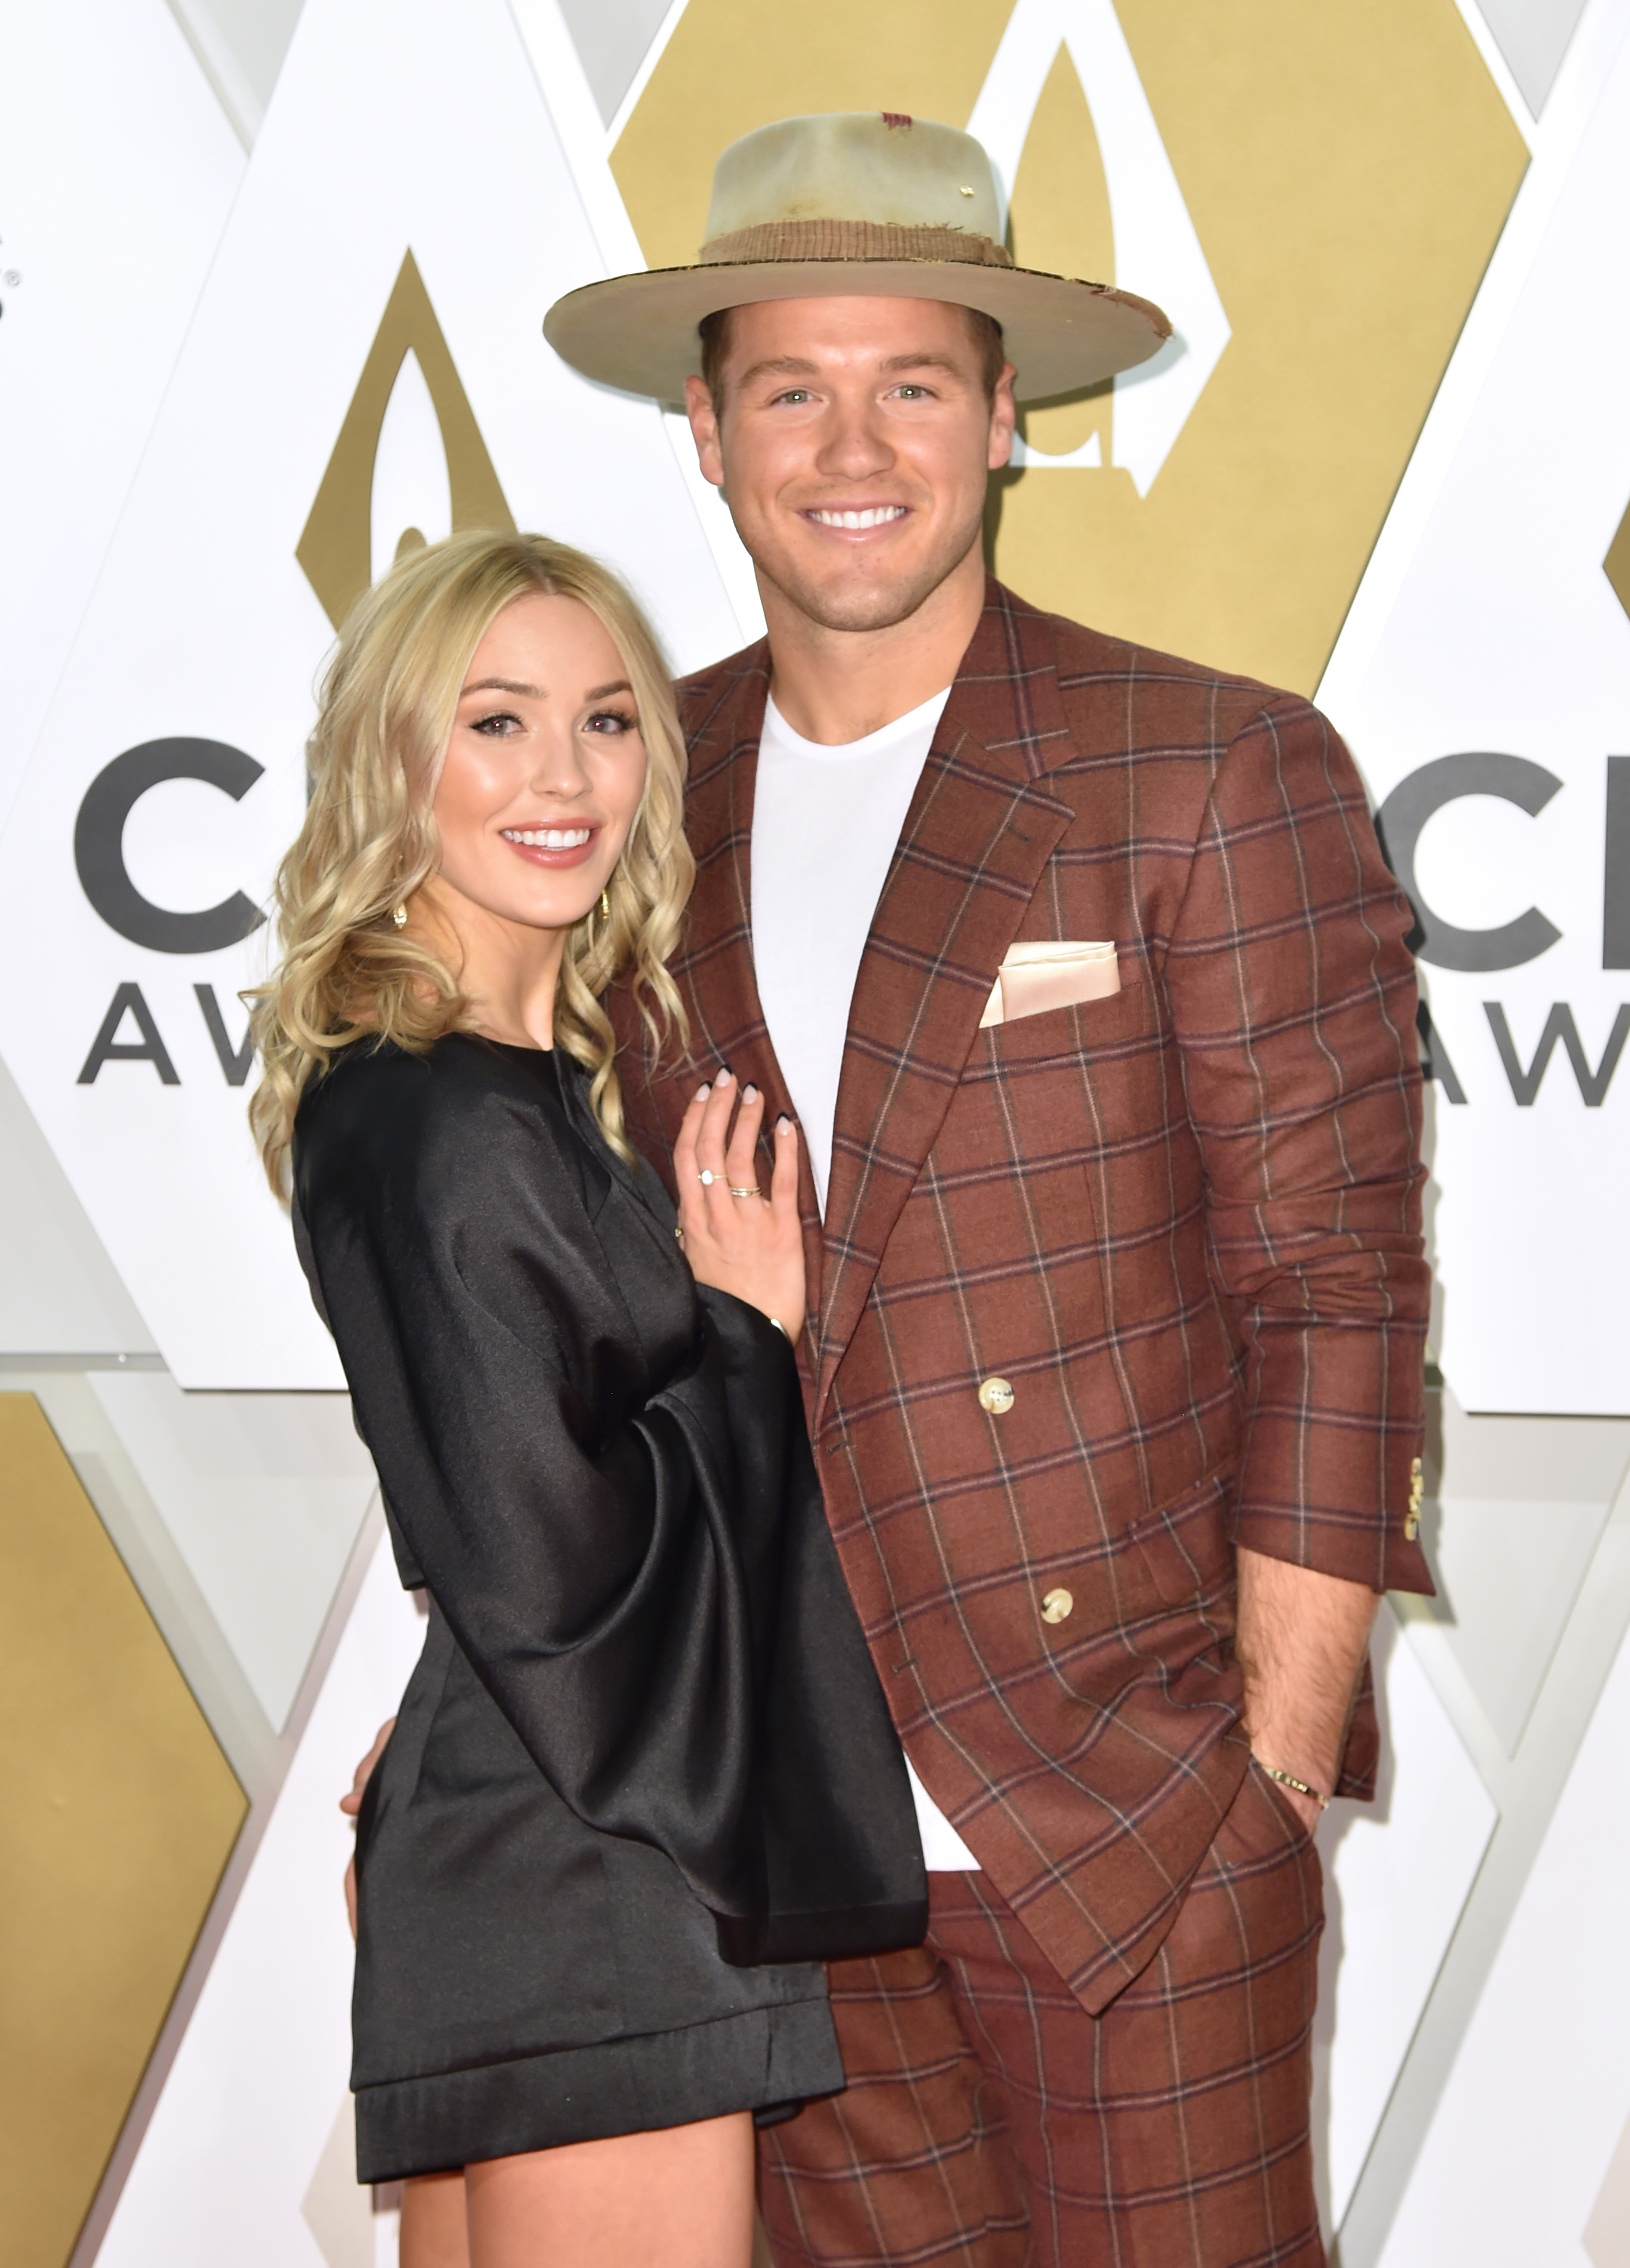 Colton Underwood Reveals He's 'Probably' Going to Propose to Girlfriend Cassie Randolph in 2020